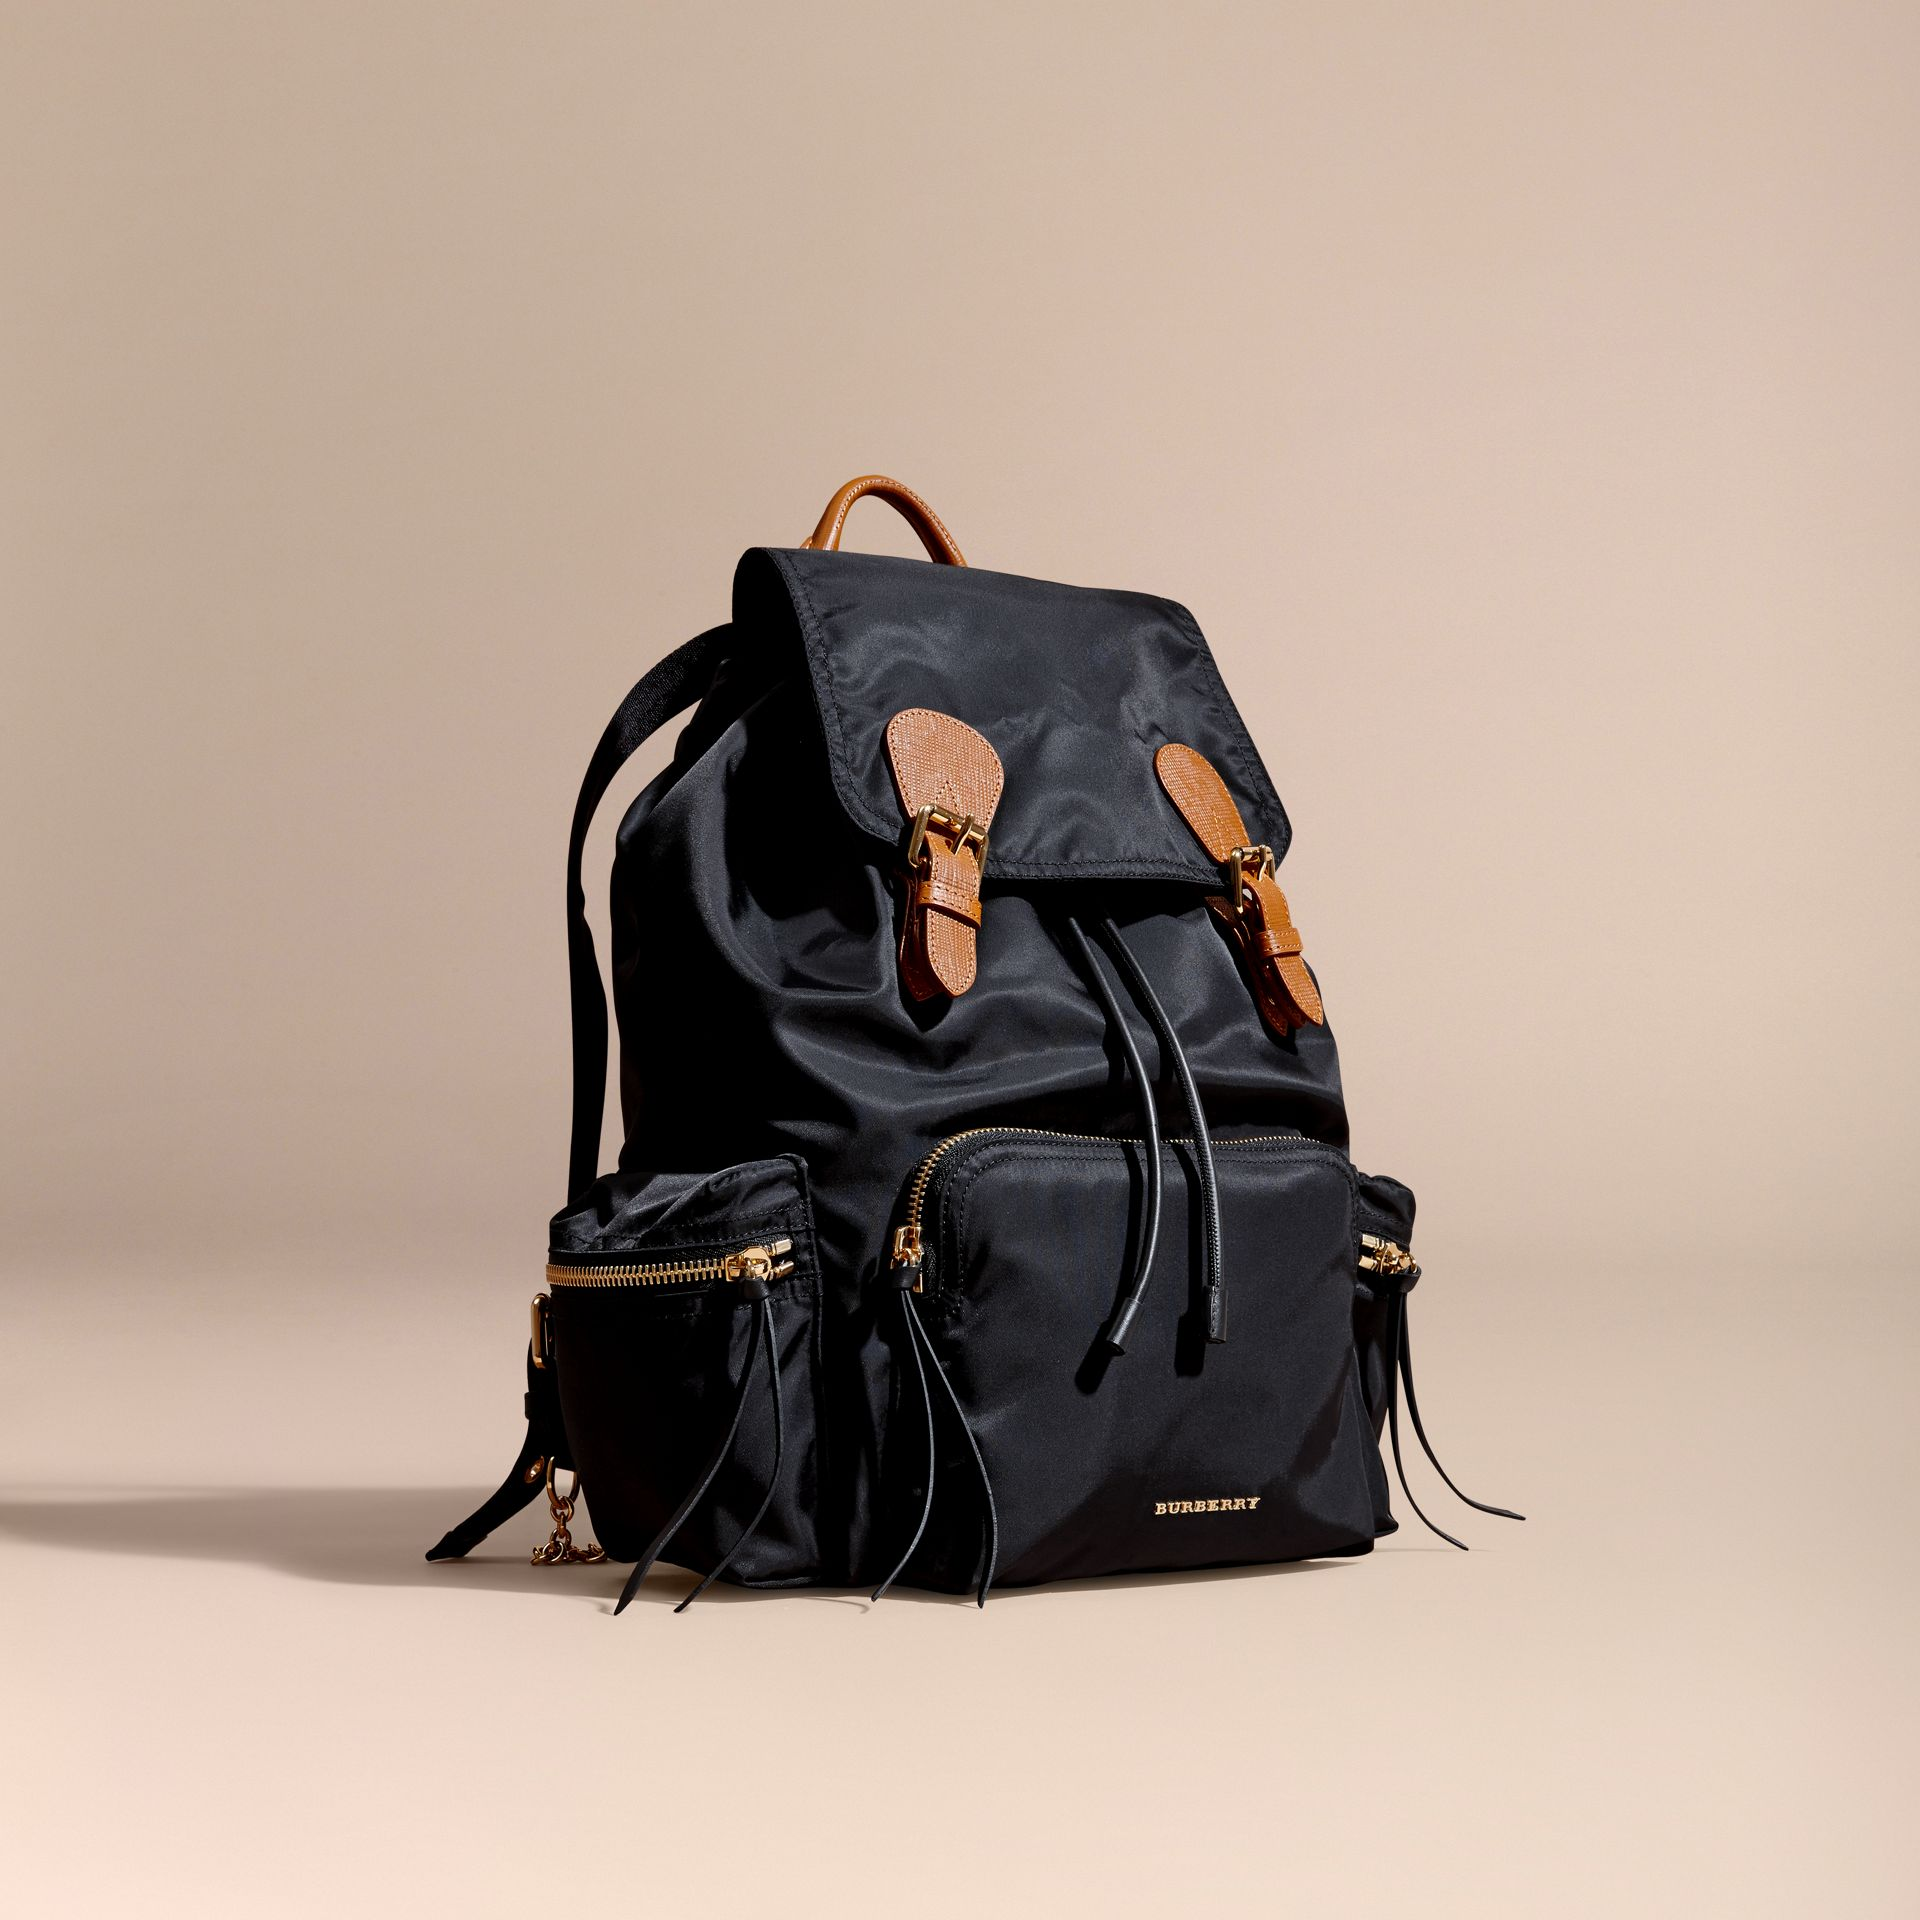 Grand sac The Rucksack en nylon technique et cuir Noir - photo de la galerie 1